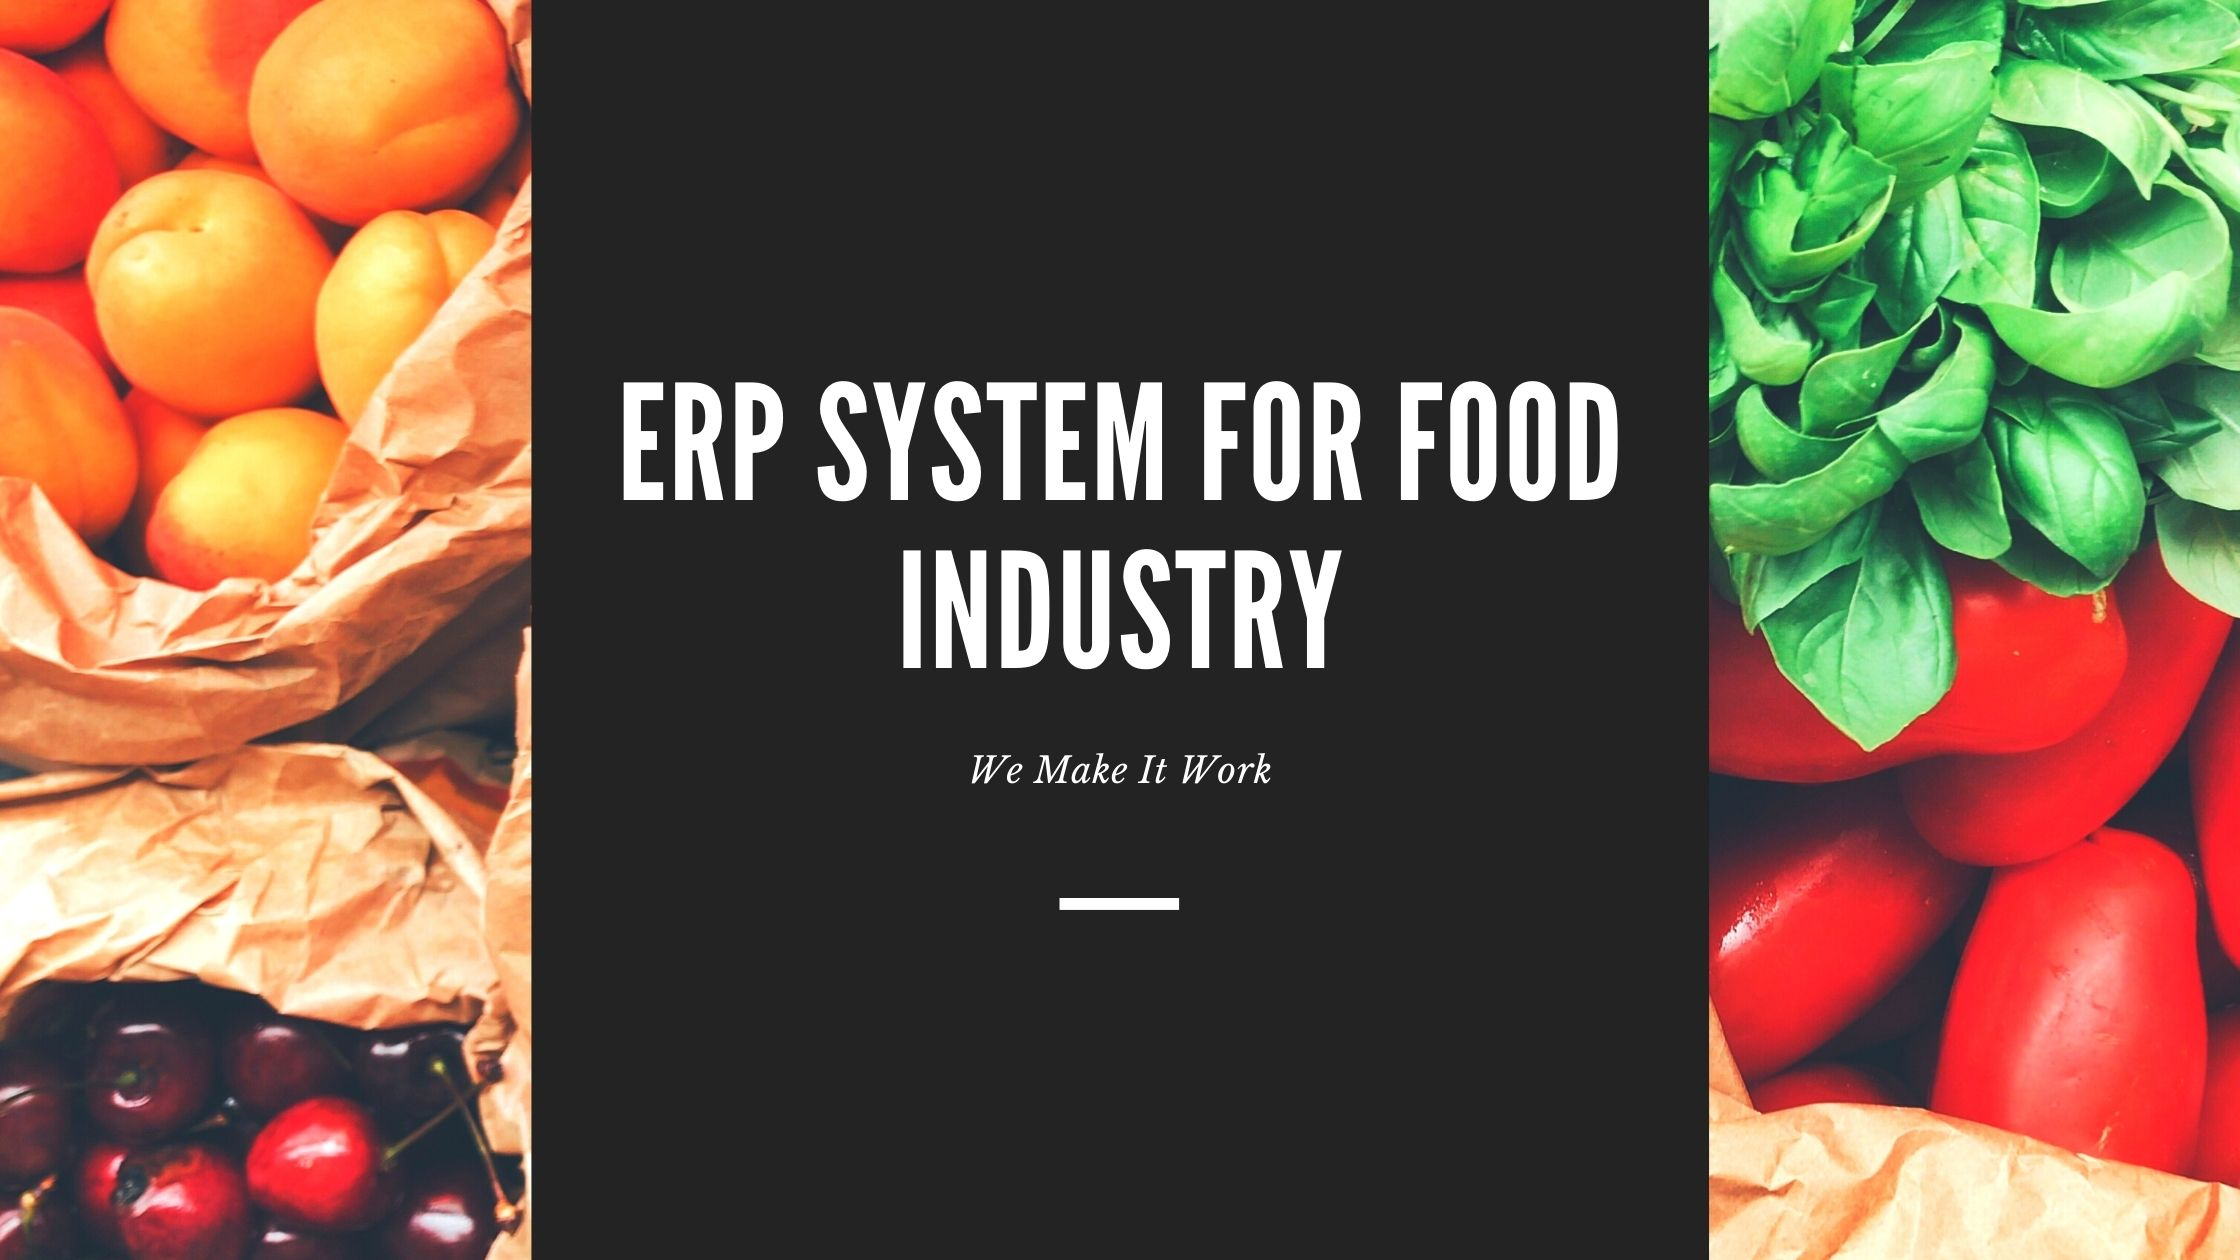 ERP System for Food Industry | ERP System for Food Manufacturers